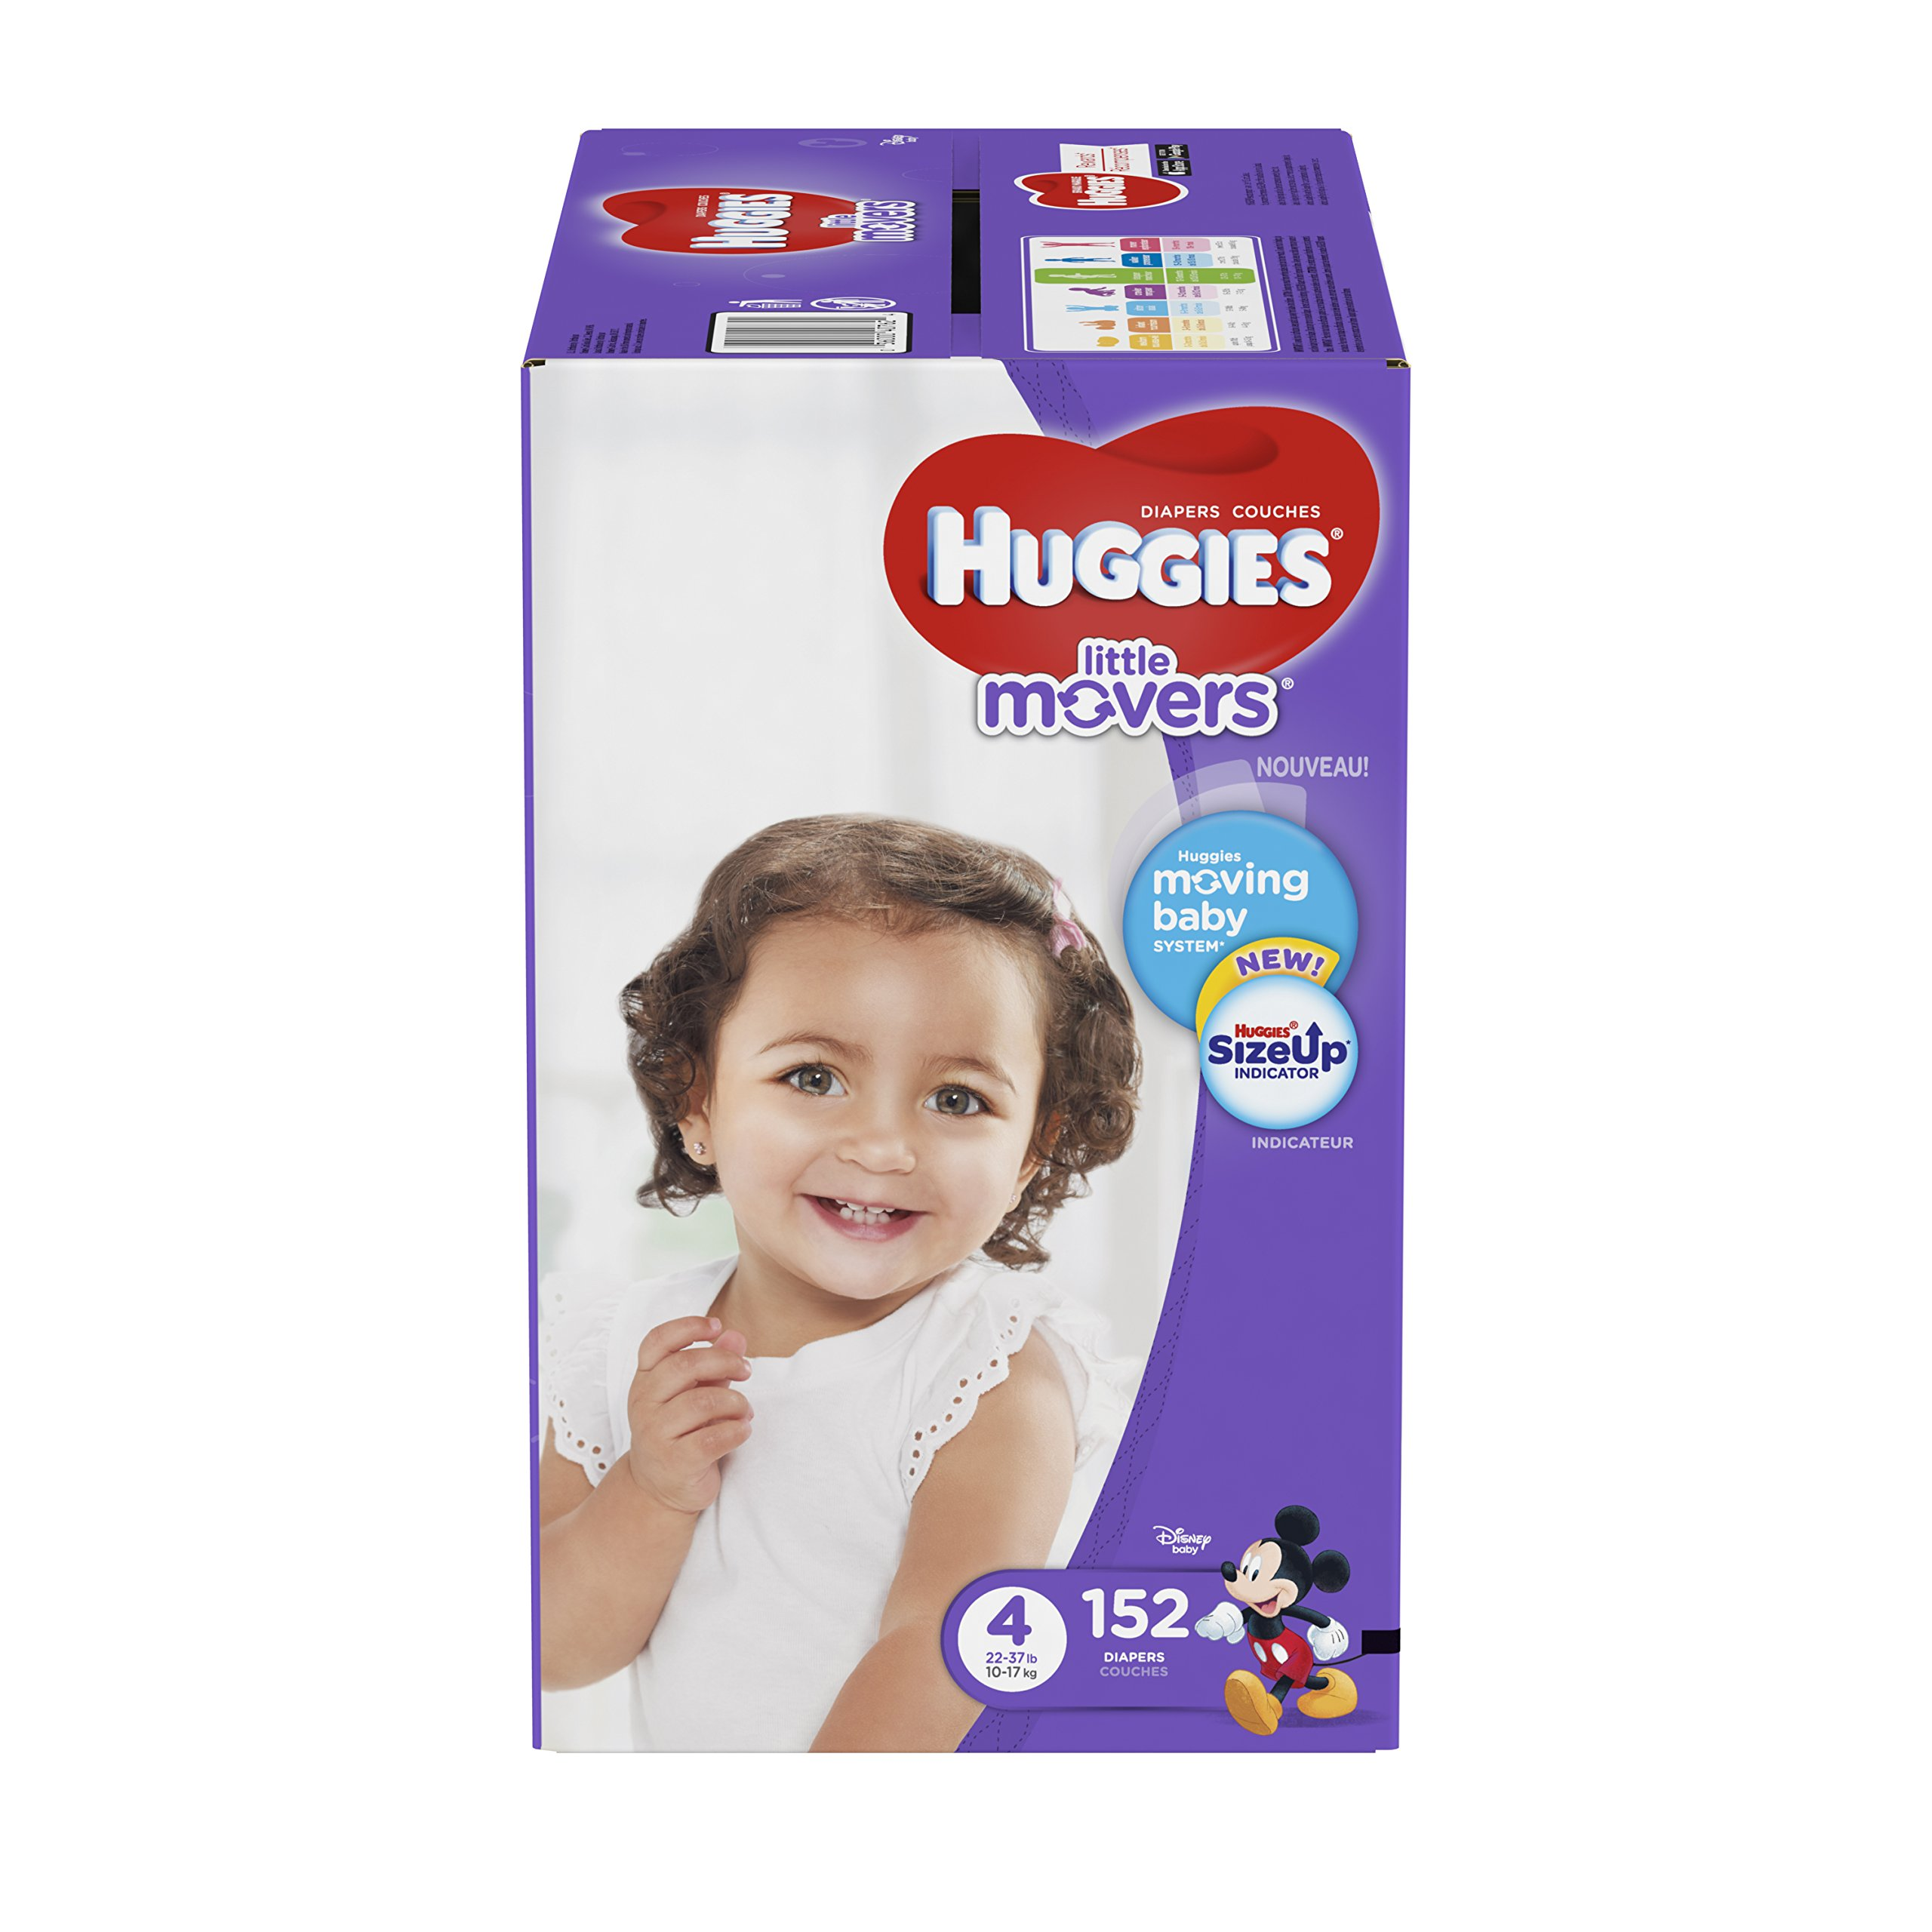 HUGGIES LITTLE MOVERS Diapers, Size 4 (22-37 lb.), 152 Ct, ECONOMY PLUS (Packaging May Vary), Baby Diapers for Active Babies